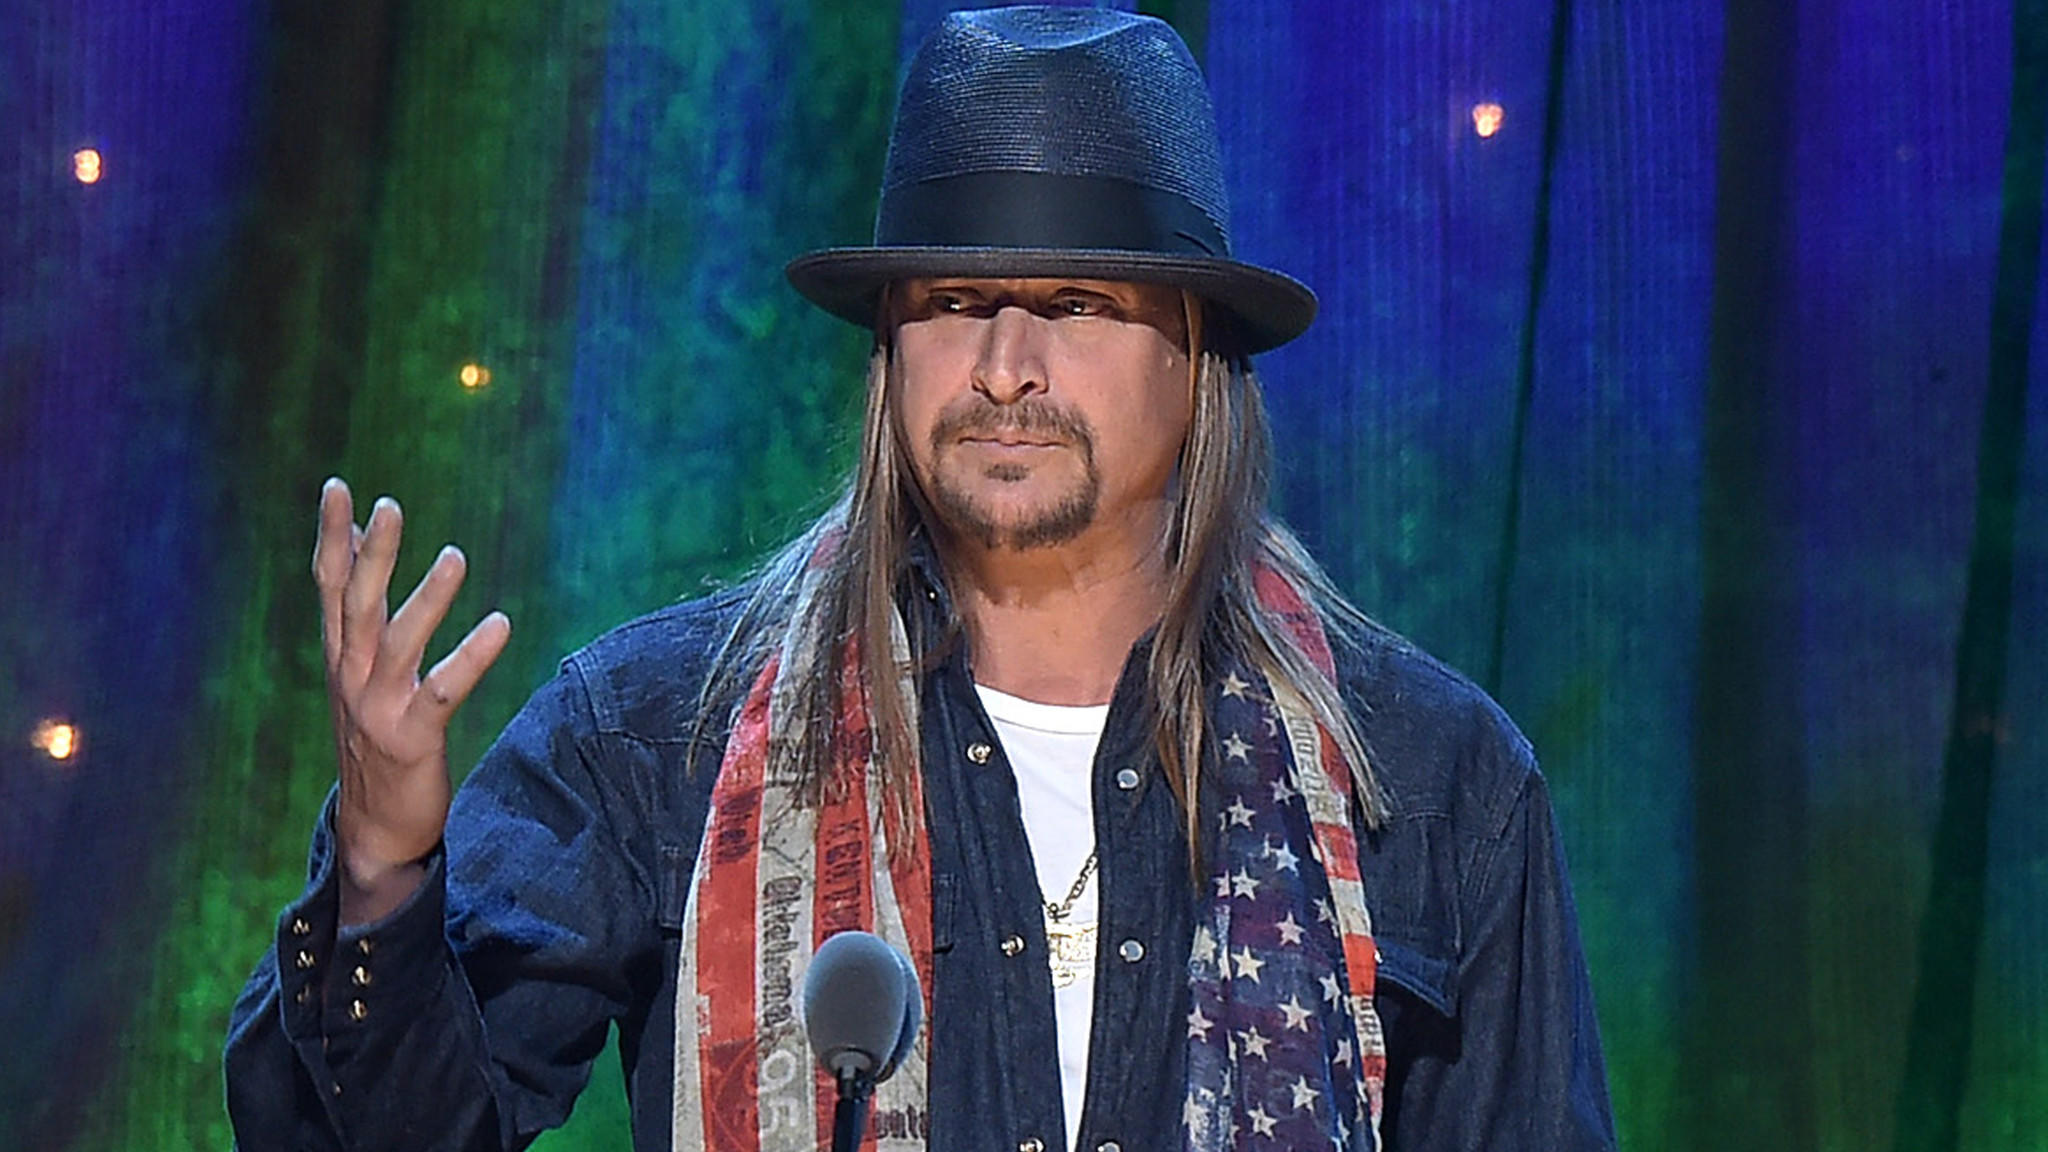 Kid Rock for US Senate? 'It's not a hoax,' he says